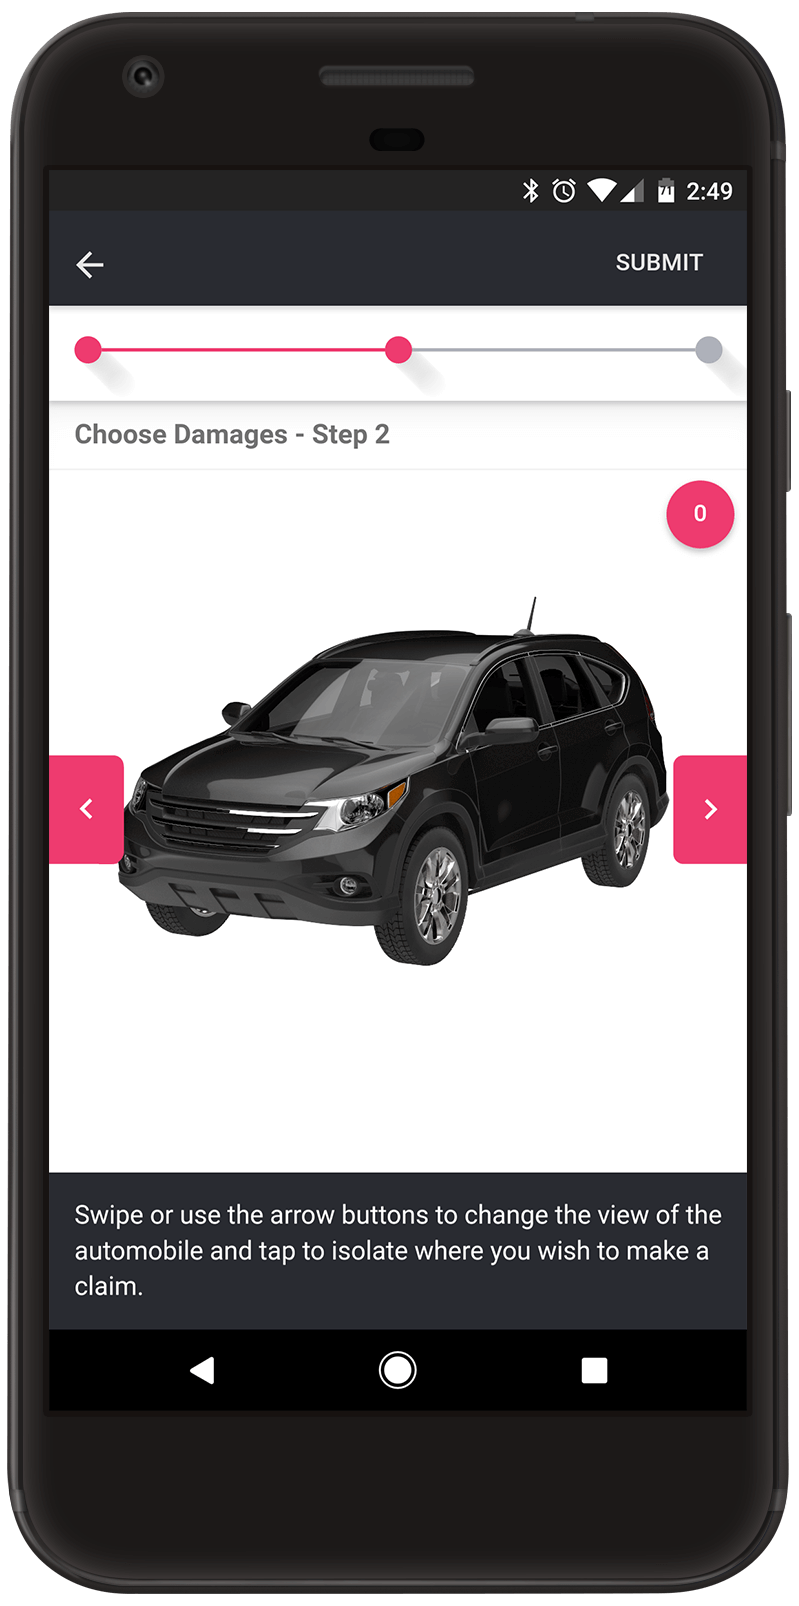 Android Damage Selection